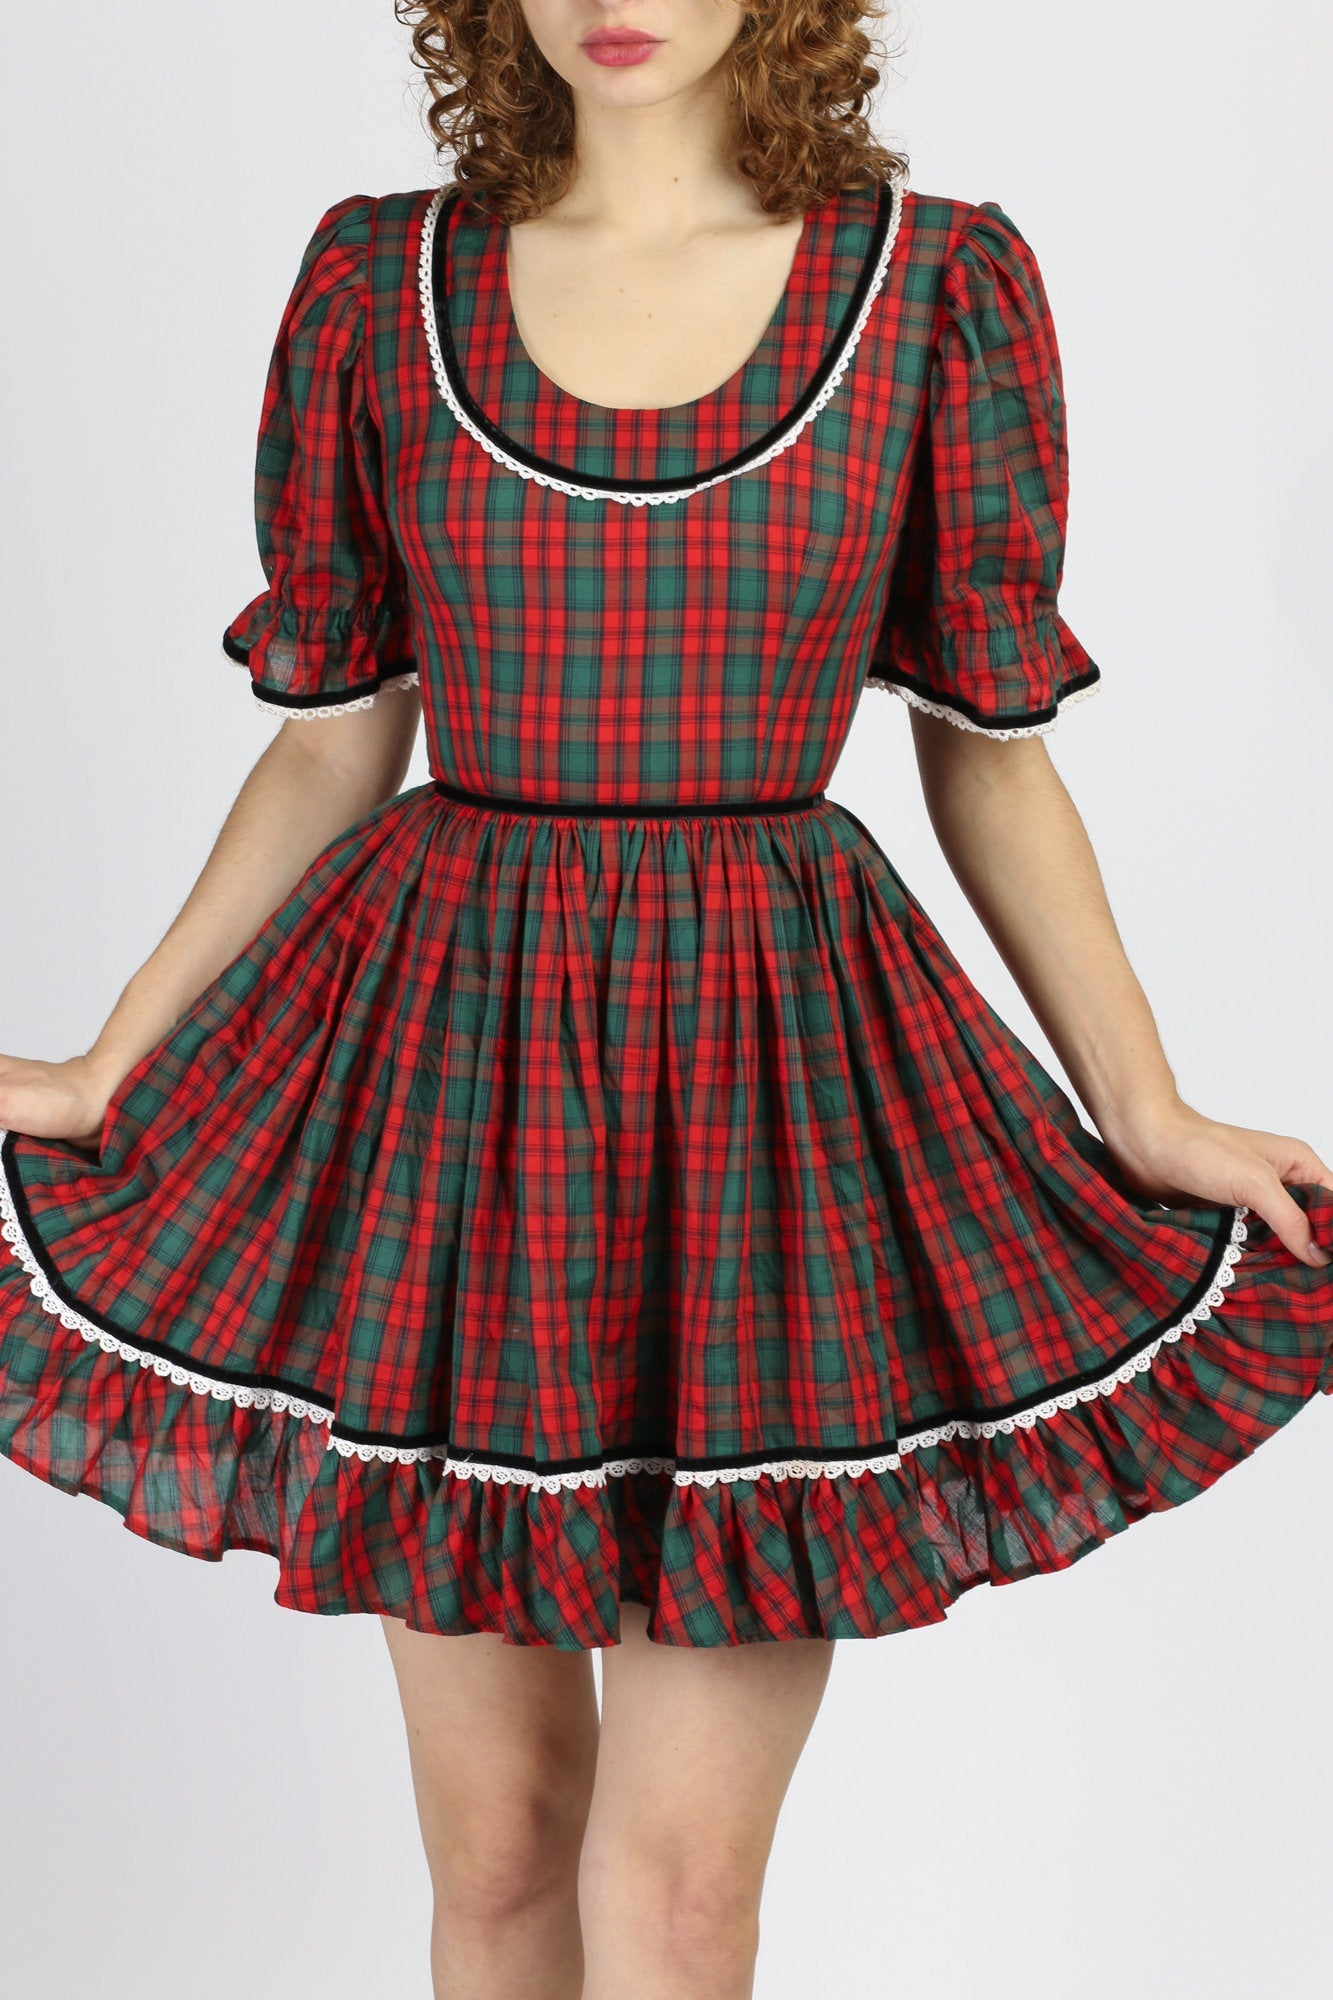 70s Red Plaid Lolita Mini Dress - Extra Small